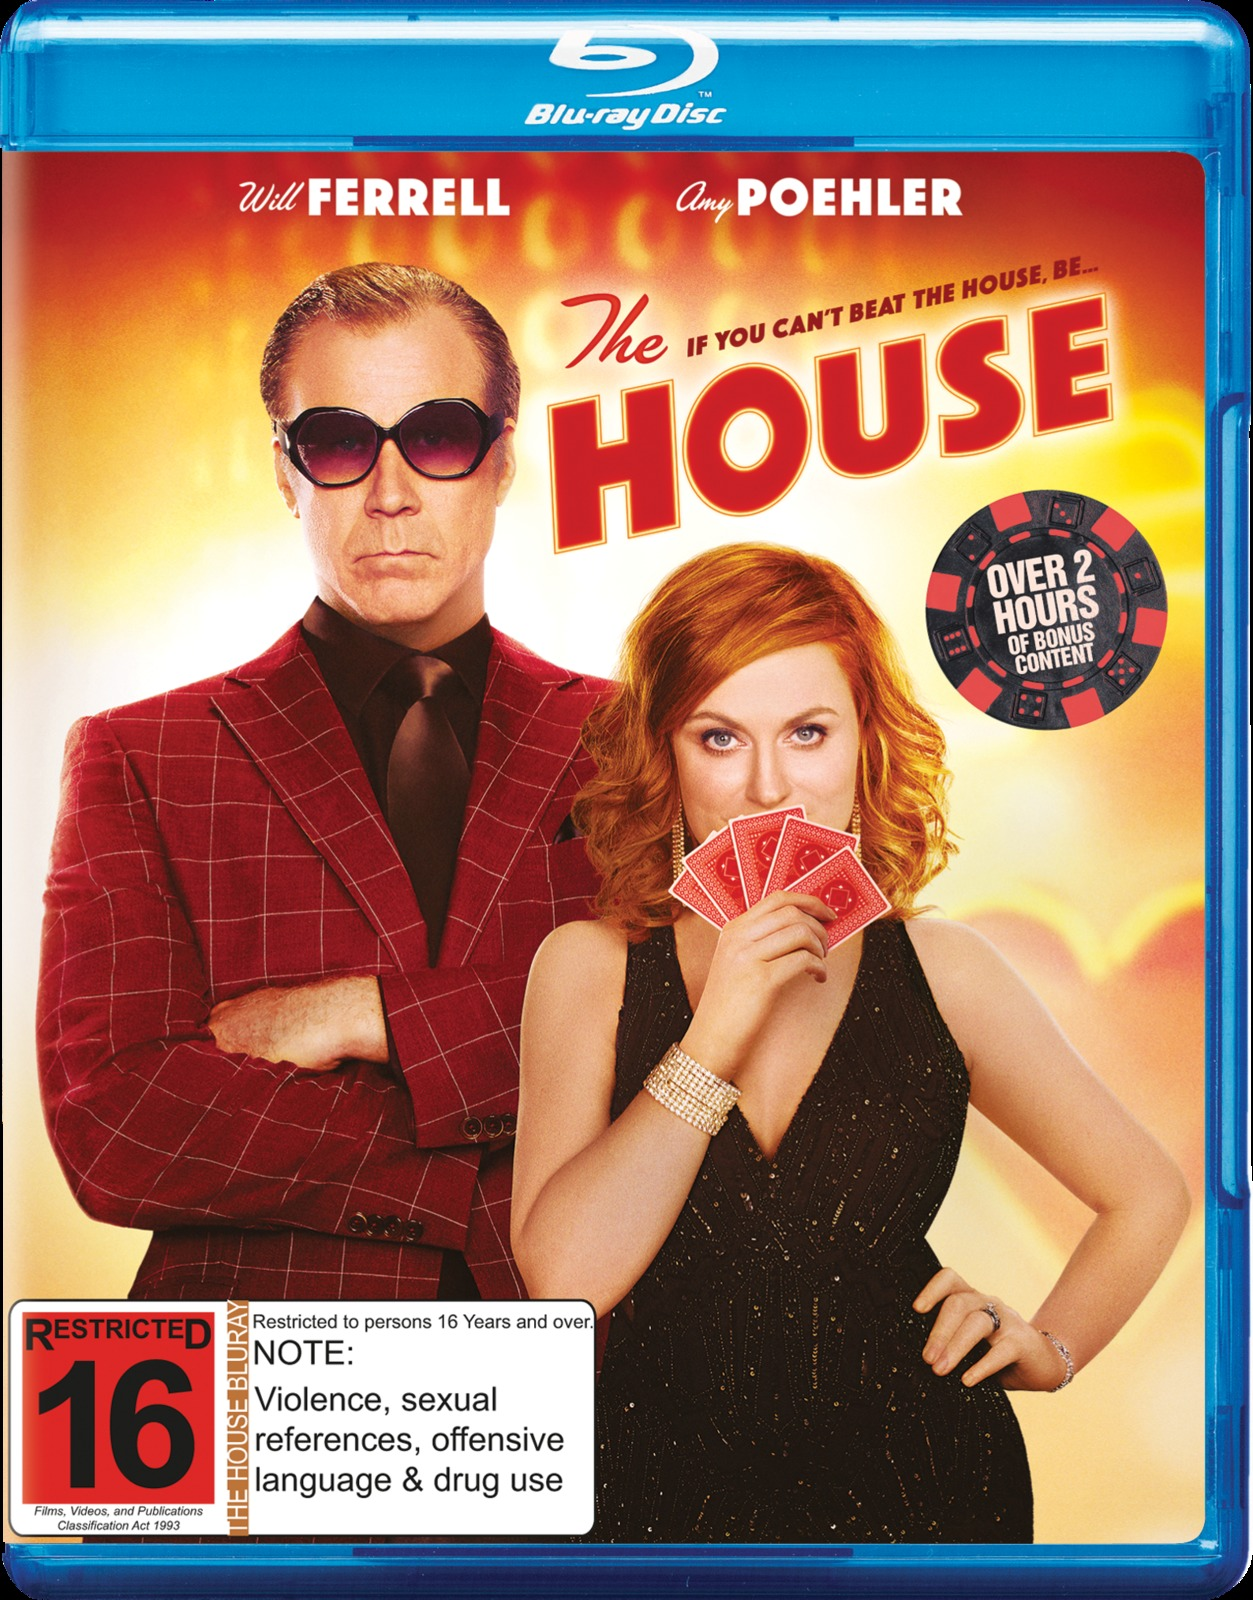 The House on Blu-ray image